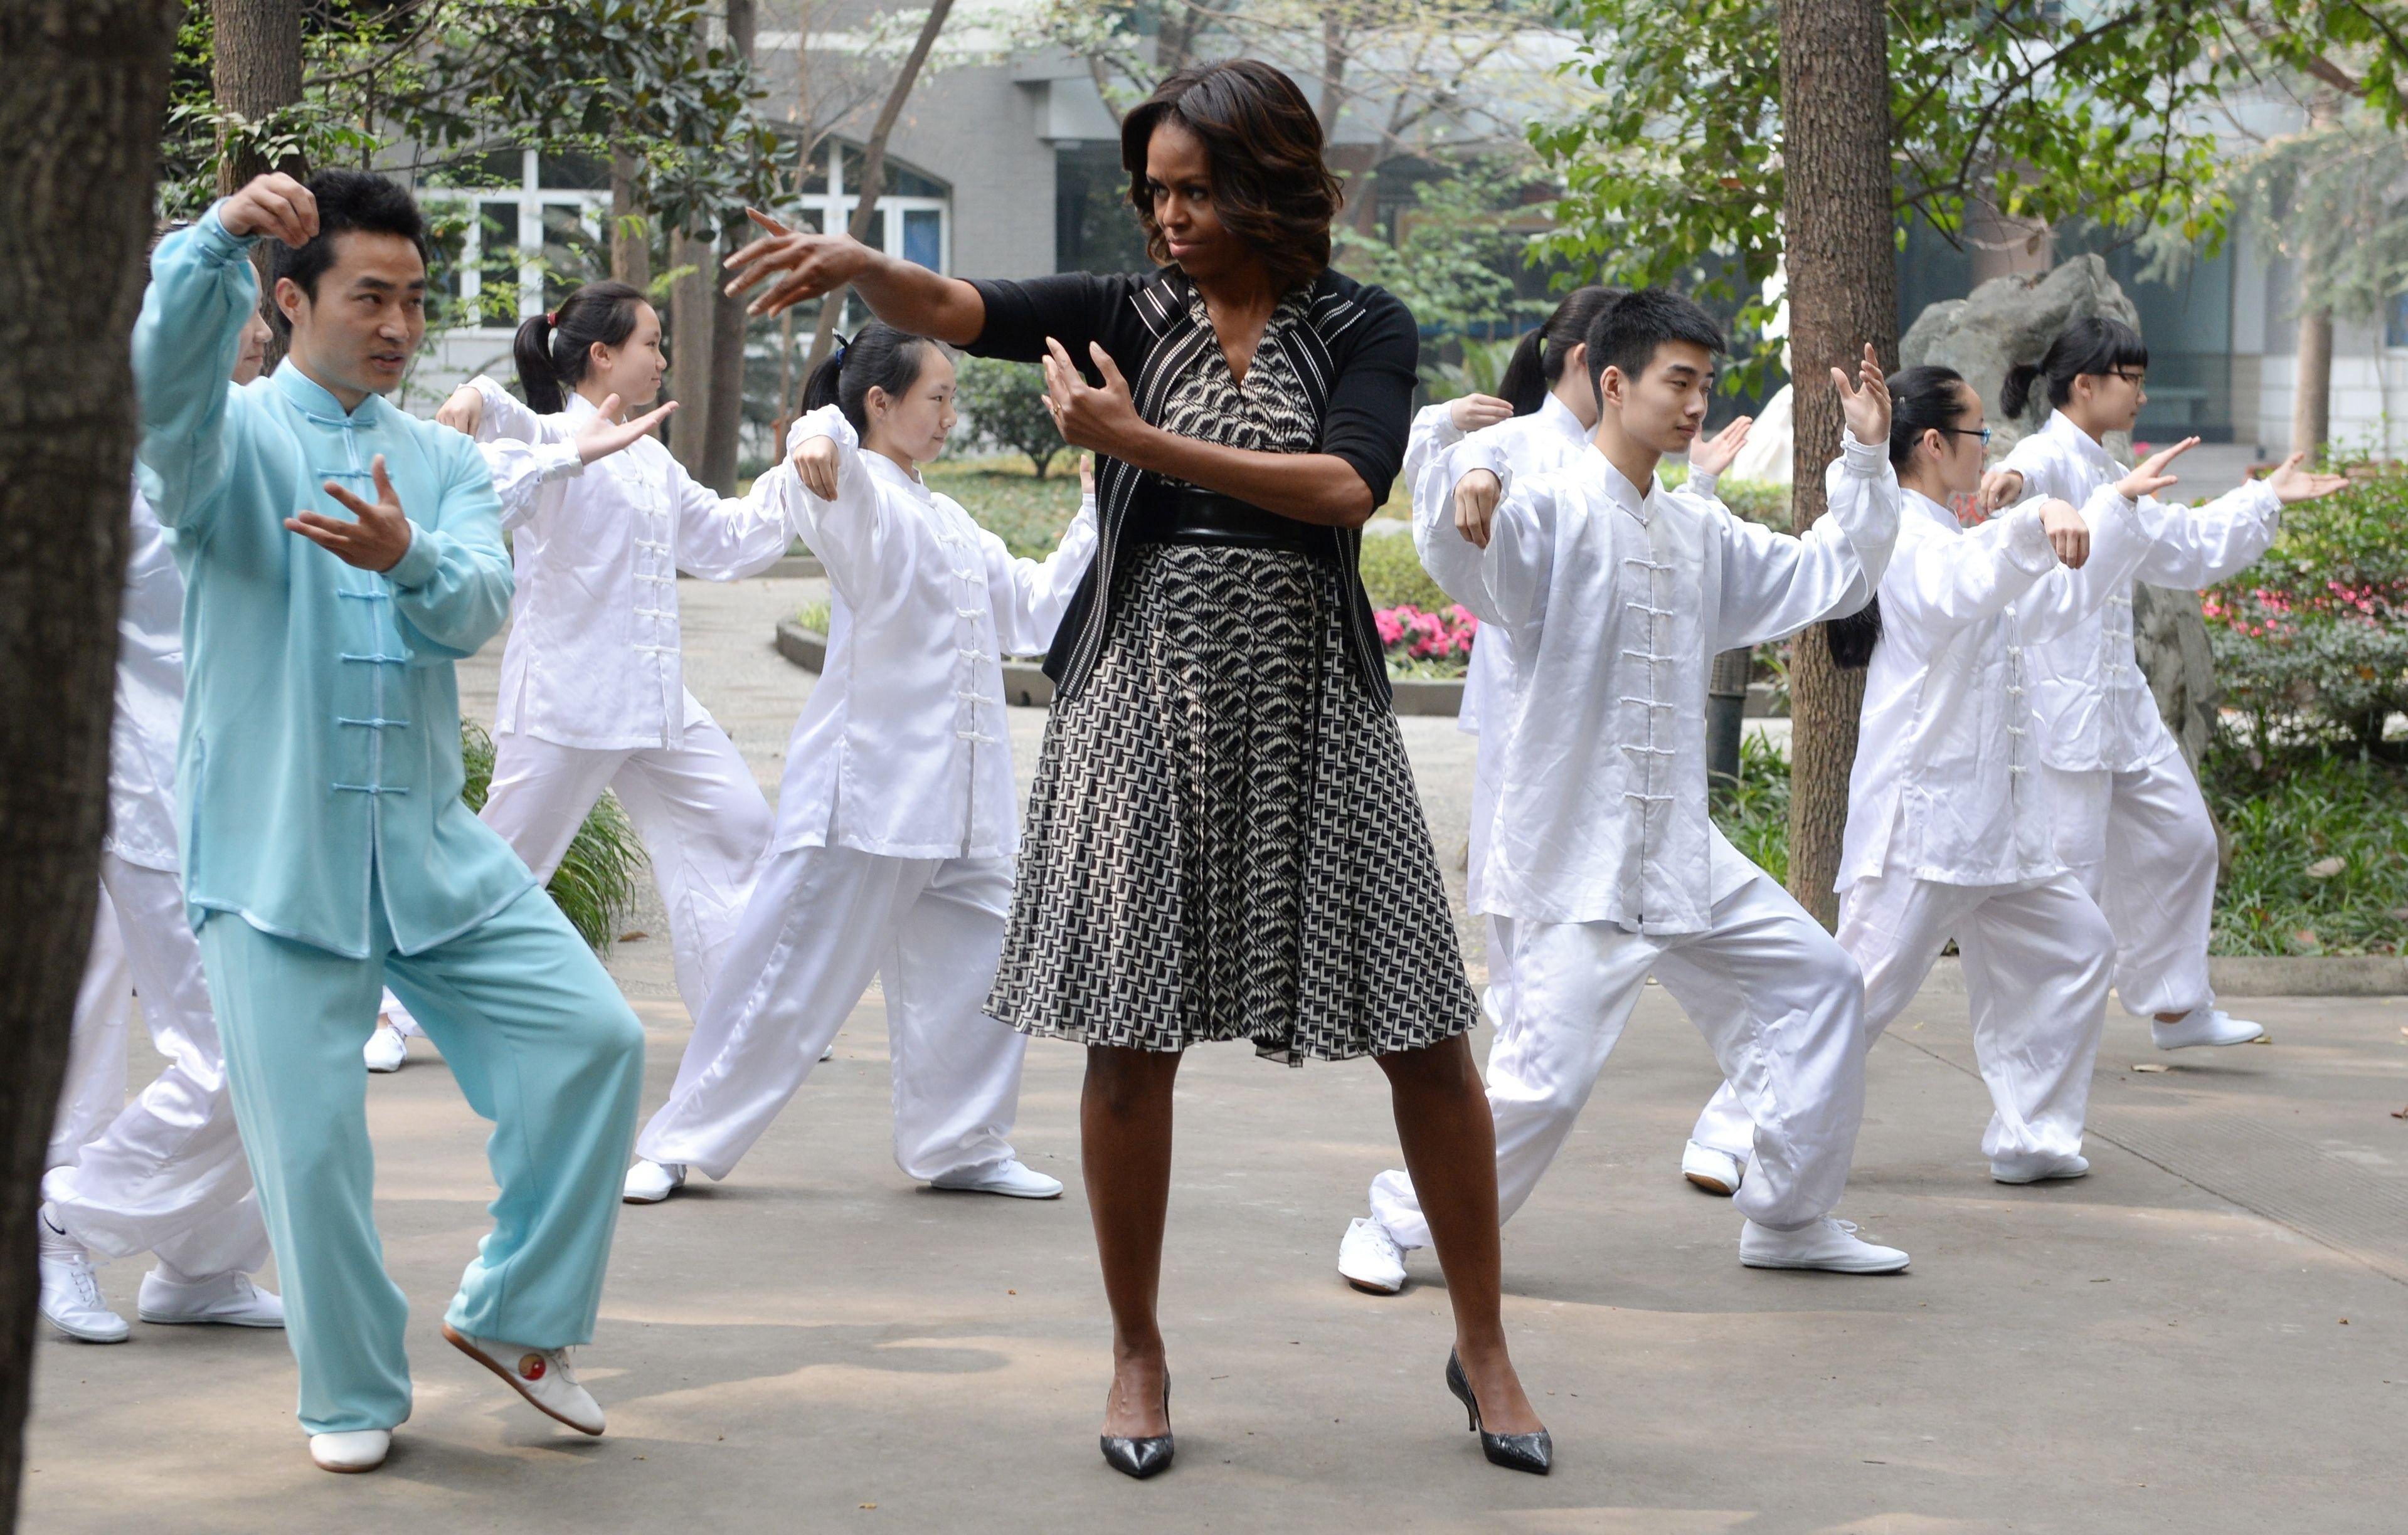 US First Lady Michelle Obama performs  tai chi  with students from the Chengdu No7 High School in Chengdu in China's southwest Sichuan province on March 25, 2014.